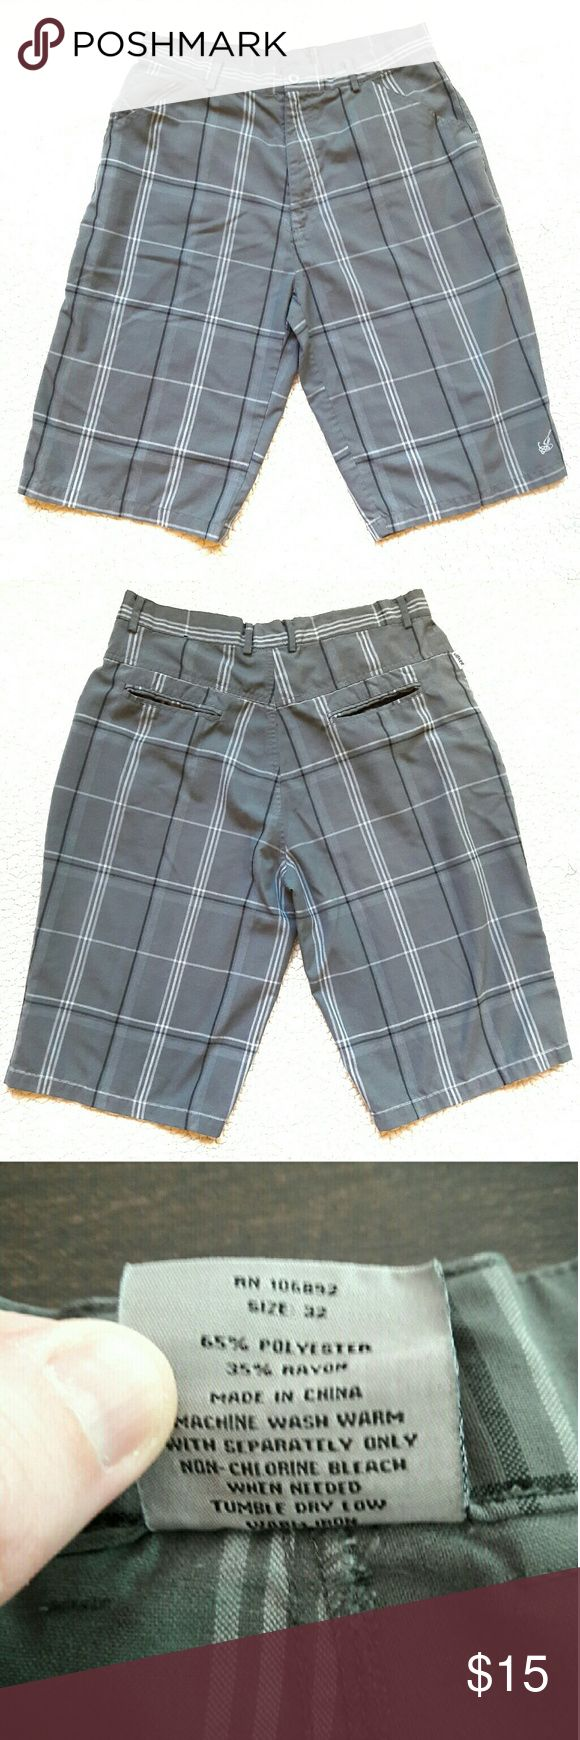 *CLEARANCE* {Mens} ᴊᴏᴋᴇʀ ⏺ long shorts Great shorts for summer! Colors are gray, white and black. Has the joker symbol on one of the legs. No flaws. Inseam Measurement provided in pic above. From a smoke and pet free home. Fast shipping! Beach - Vacation - Fun - date night - guy - spring - summer *IF YOU LIKE MY ITEMS, please FOLLOW ME to see NEW ARRIVALS that are added weekly* Joker Shorts